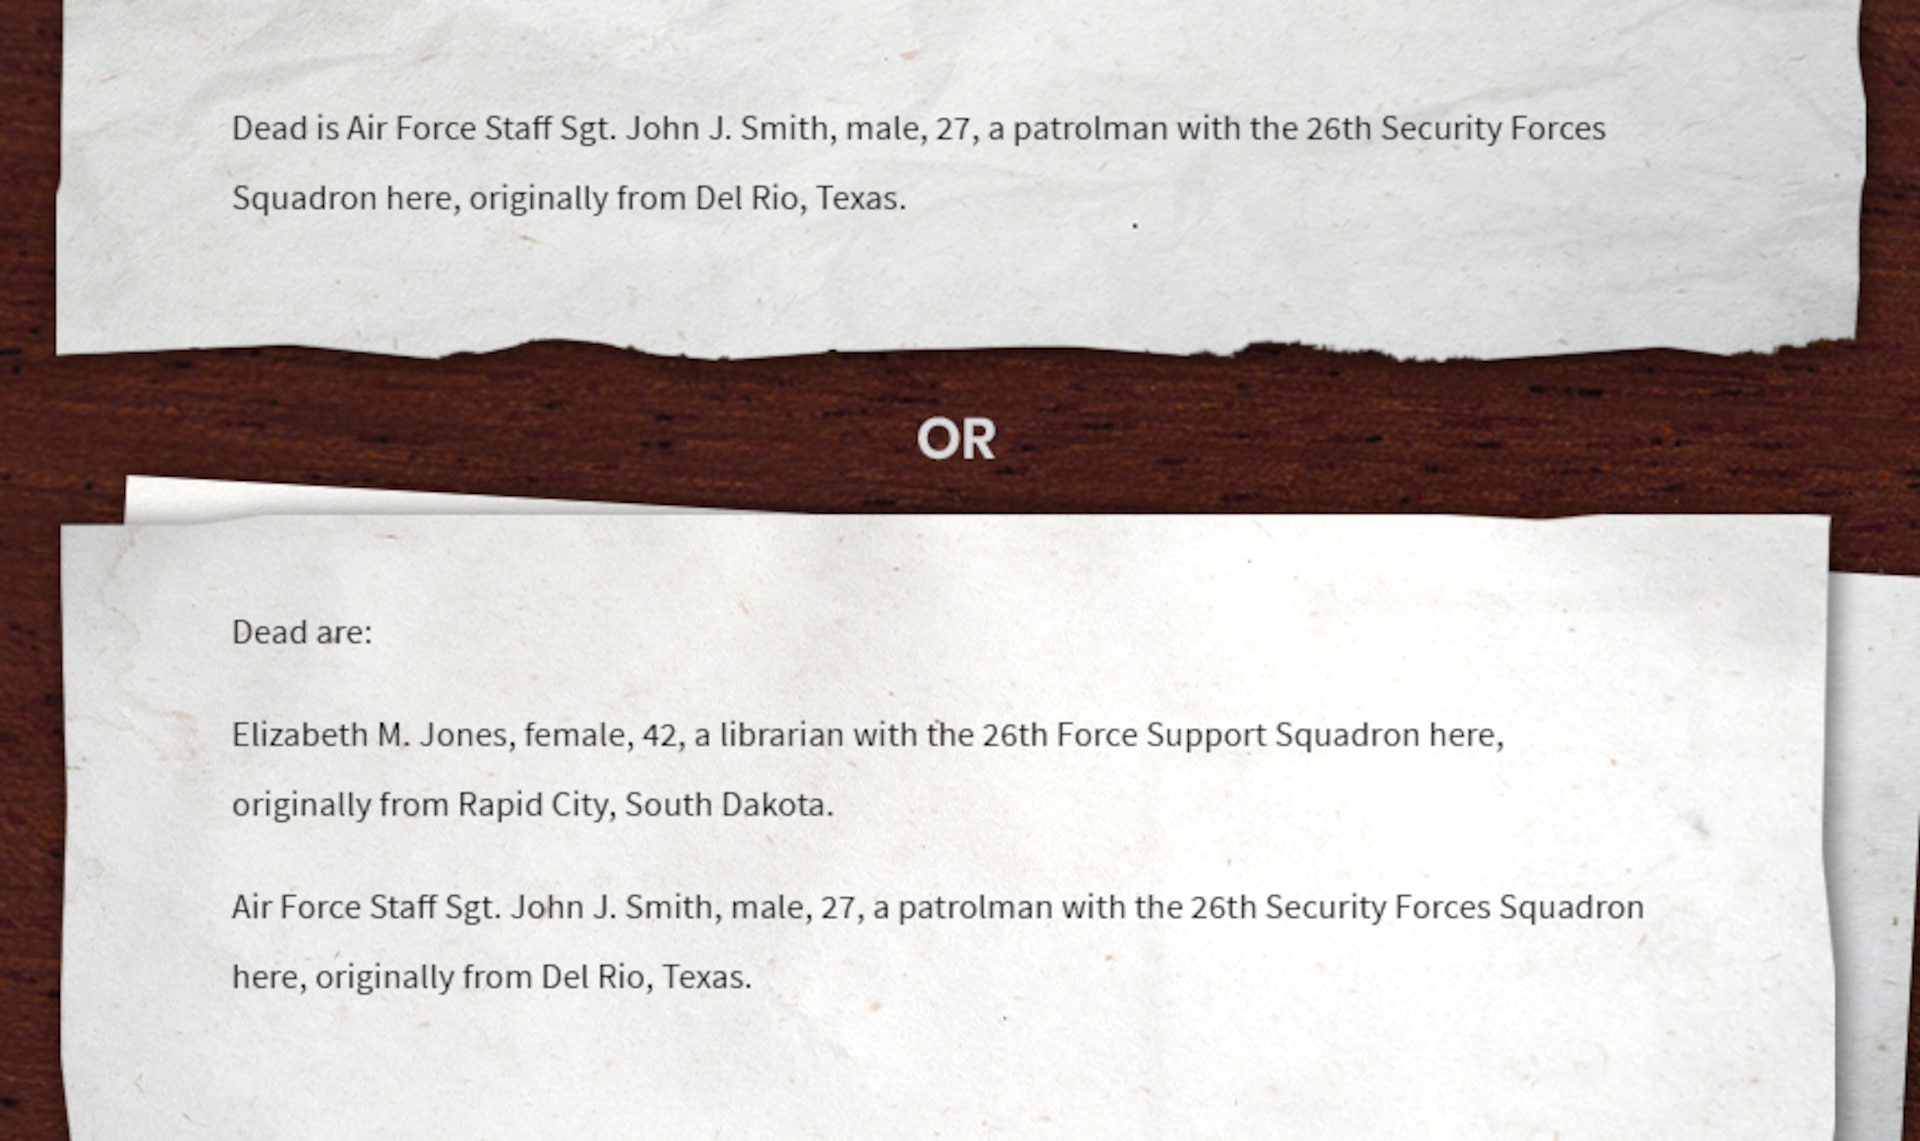 Writing sample of a bridge sentence for deceased: Dead is Air Force Staff Sgt. John J. Smith, male, 27, a patrolman with the 26th Security Forces Squadron here, originally from Del Rio, Texas. Or Dead are: Elizabeth M. Jones, female, 42, a librarian with the 26th Force Support Squadron here, originally from Rapid City, South Dakota. Air Force Staff Sgt. John J. Smith, male, 27, a patrolman with the 26th Security Forces Squadron here, originally from Del Rio, Texas.